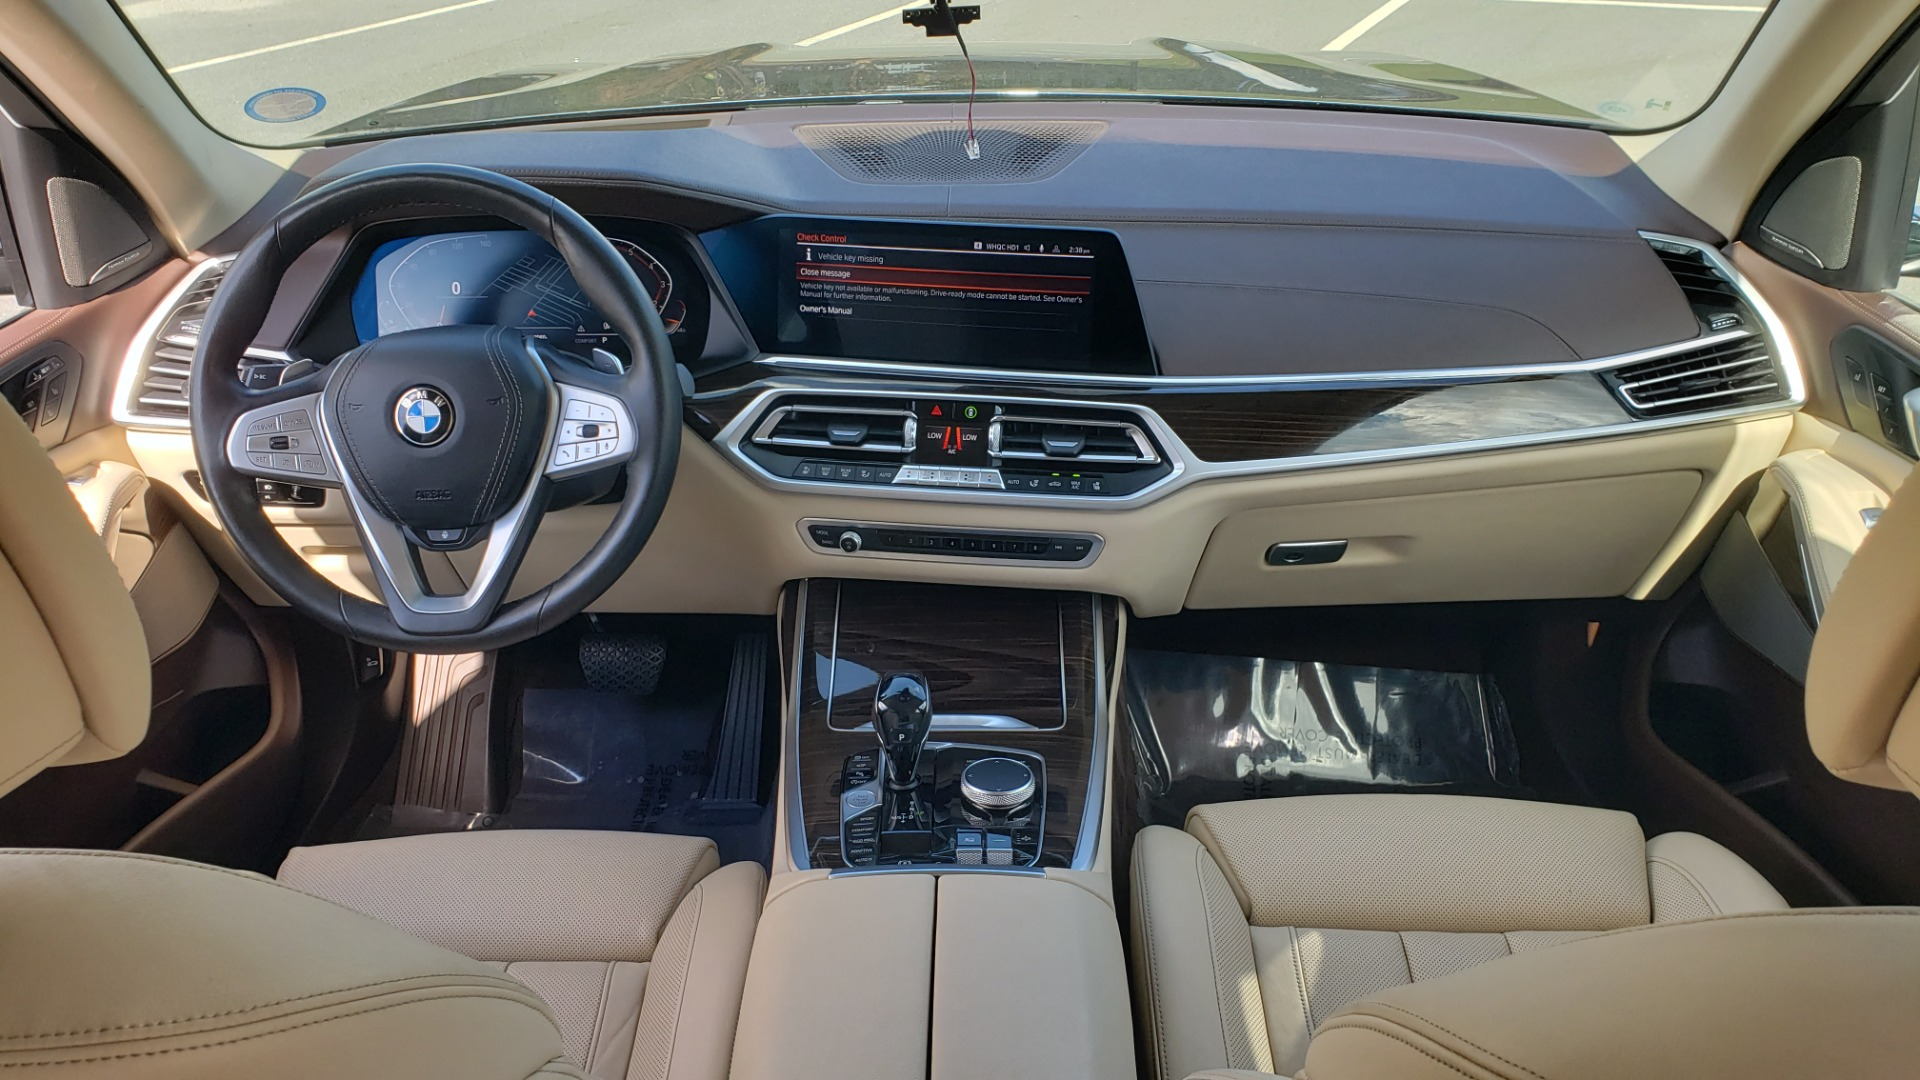 Used 2019 BMW X7 XDRIVE40I PREMIUM / LUXURY / COLD WEATHER / PARK ASST / PANORAMIC SKY / TOW for sale $75,999 at Formula Imports in Charlotte NC 28227 95